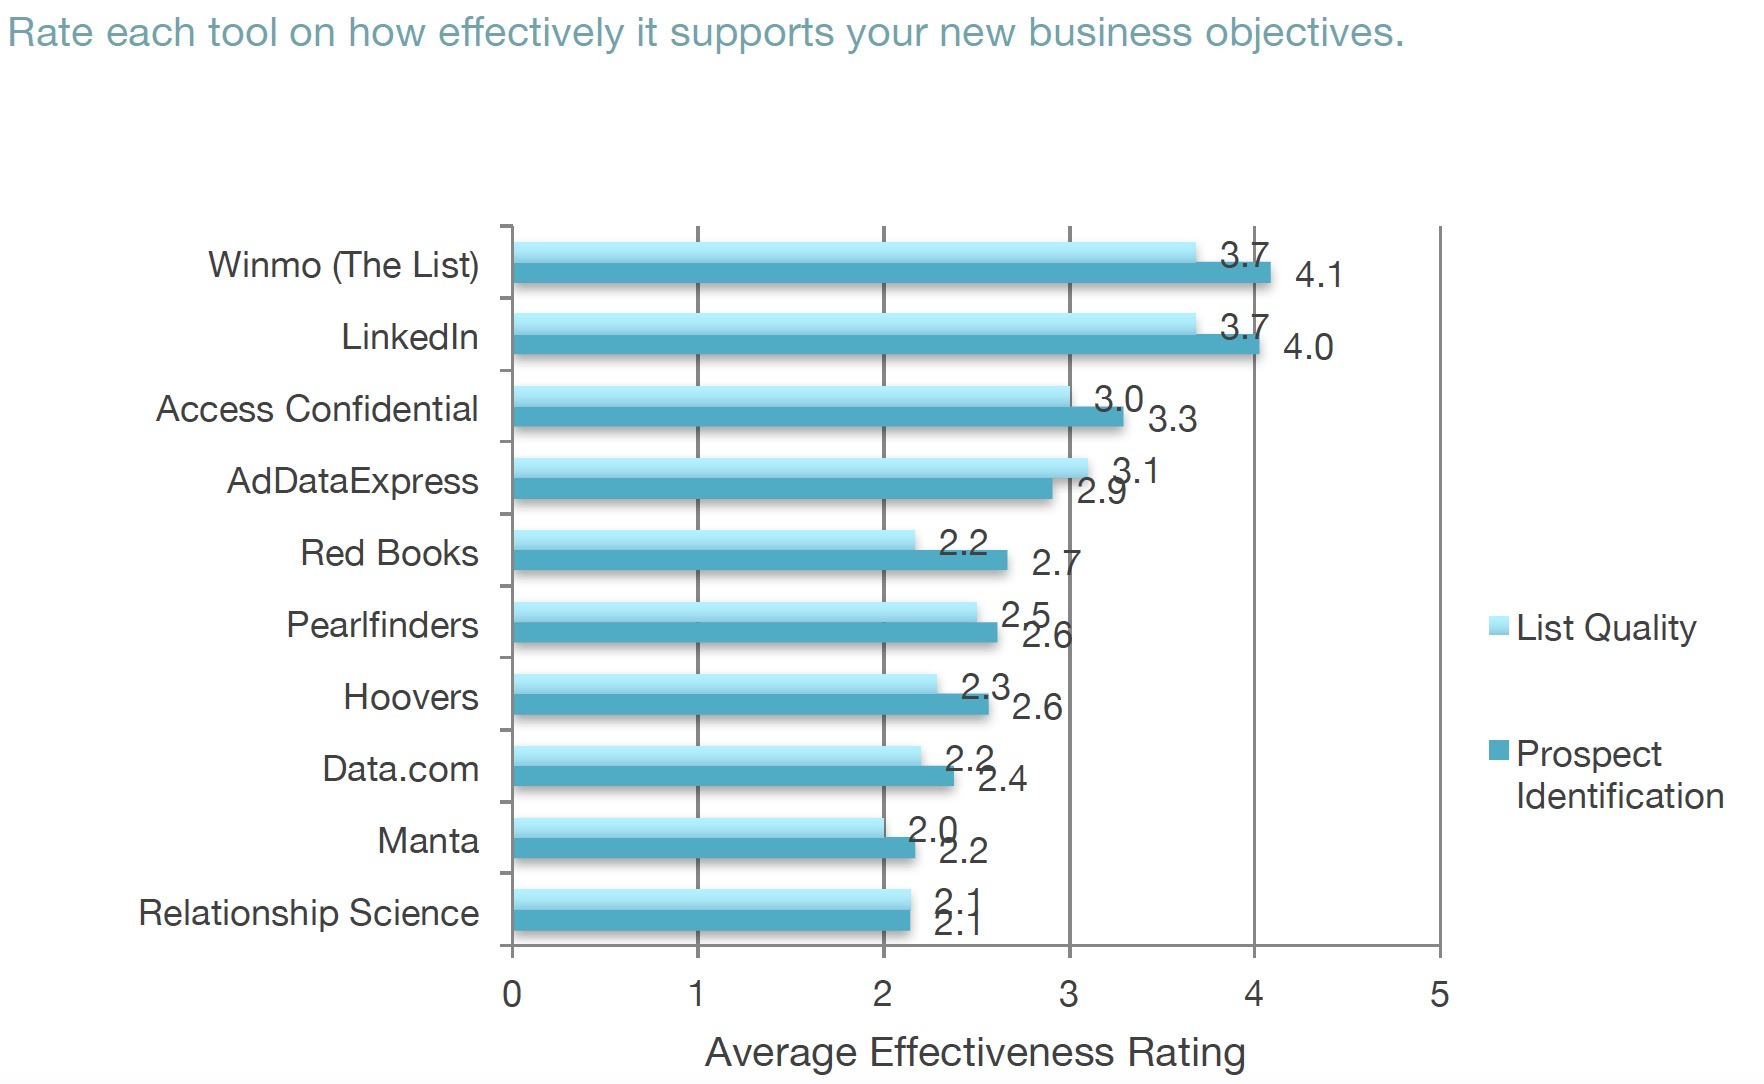 Source: Mirren-RSW/US 2017 New Business Tools Annual Report